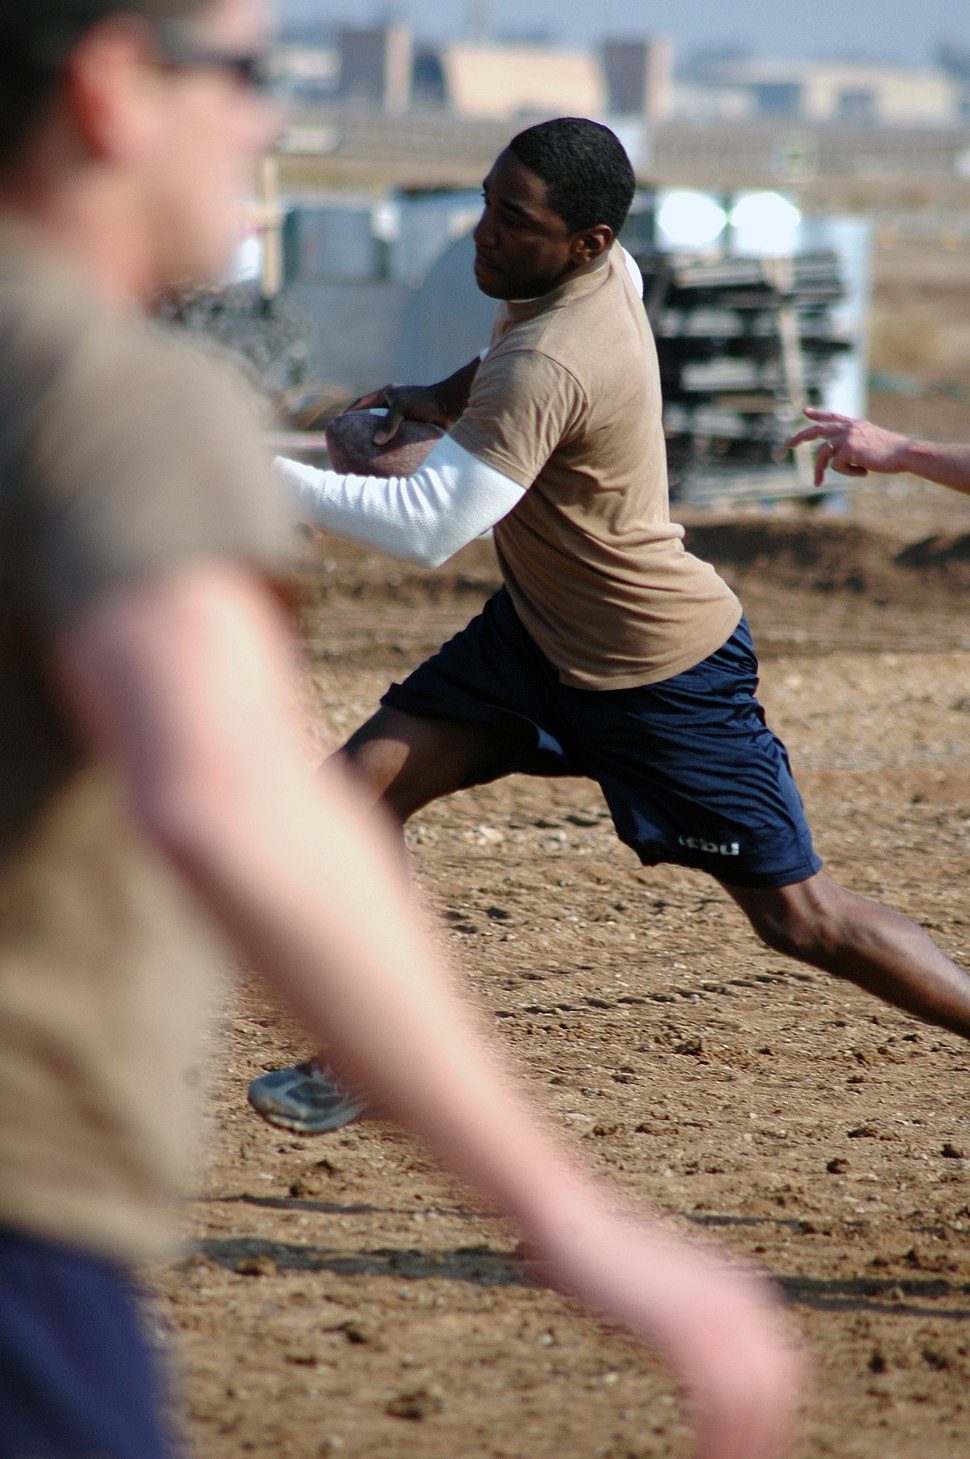 US Navy 080112-N-7367K-006 Builder 3rd Class Bryan Williams, assigned to Naval Mobile Construction Battalion (NMCB) 1, Task Force Sierra, scrambles out of a defender's reach in a two-hand-touch football game during the detachme